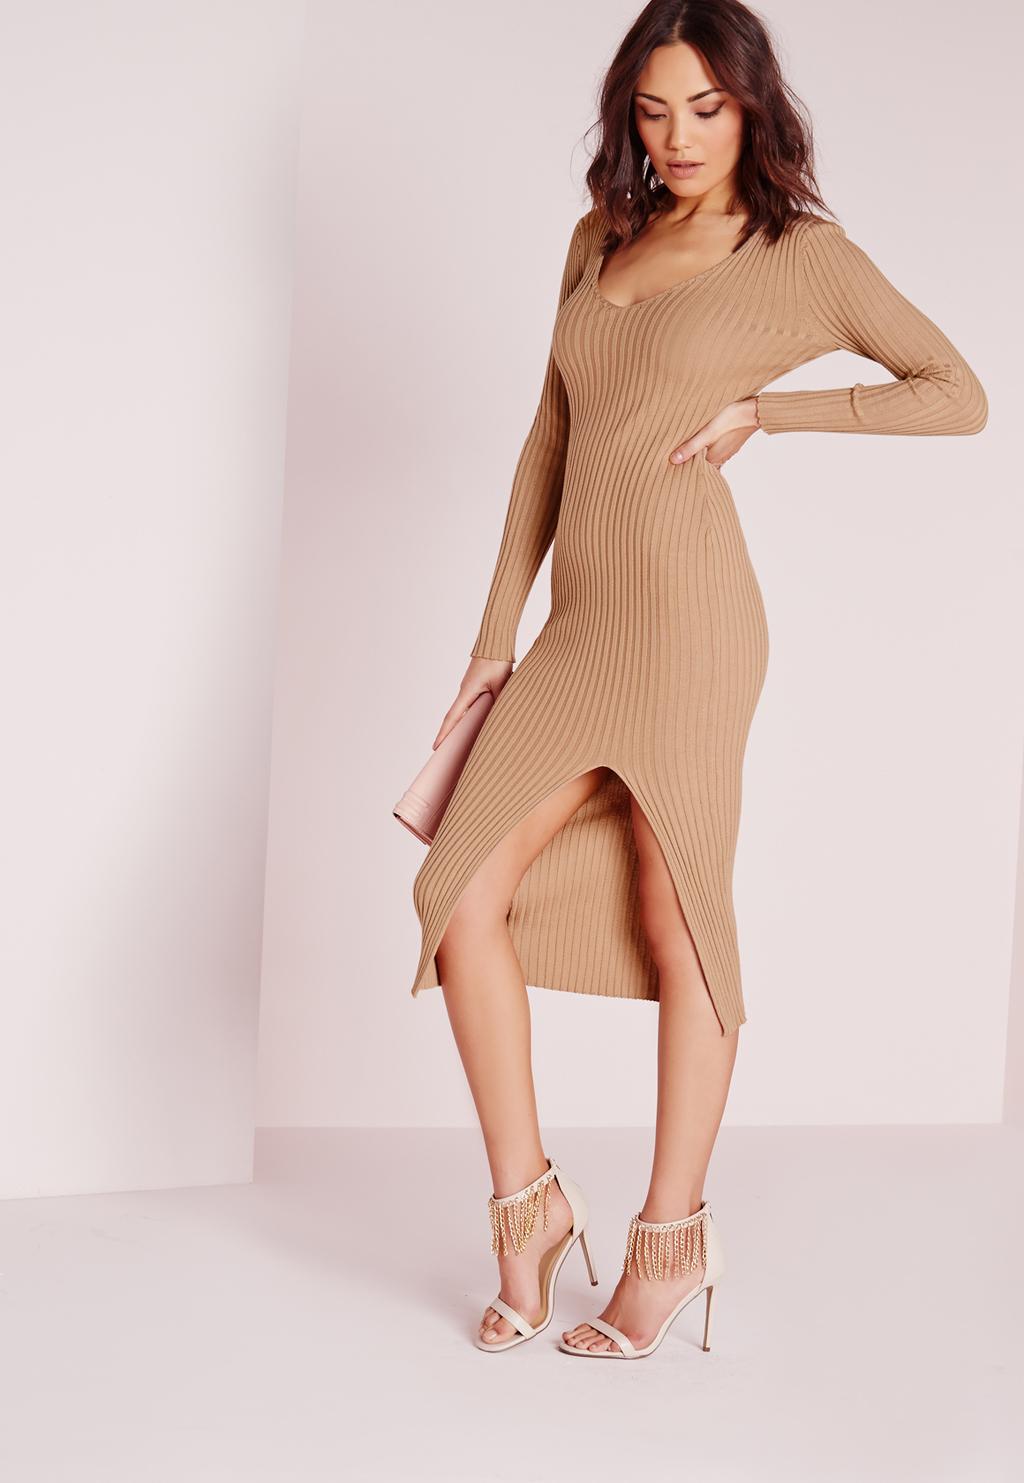 Long Sleeve Thigh Split Knitted Dress Camel, Beige - length: below the knee; fit: tight; pattern: plain; style: bodycon; hip detail: draws attention to hips; predominant colour: camel; occasions: evening; neckline: scoop; fibres: polyester/polyamide - stretch; sleeve length: long sleeve; sleeve style: standard; texture group: knits/crochet; pattern type: knitted - other; season: s/s 2016; wardrobe: event